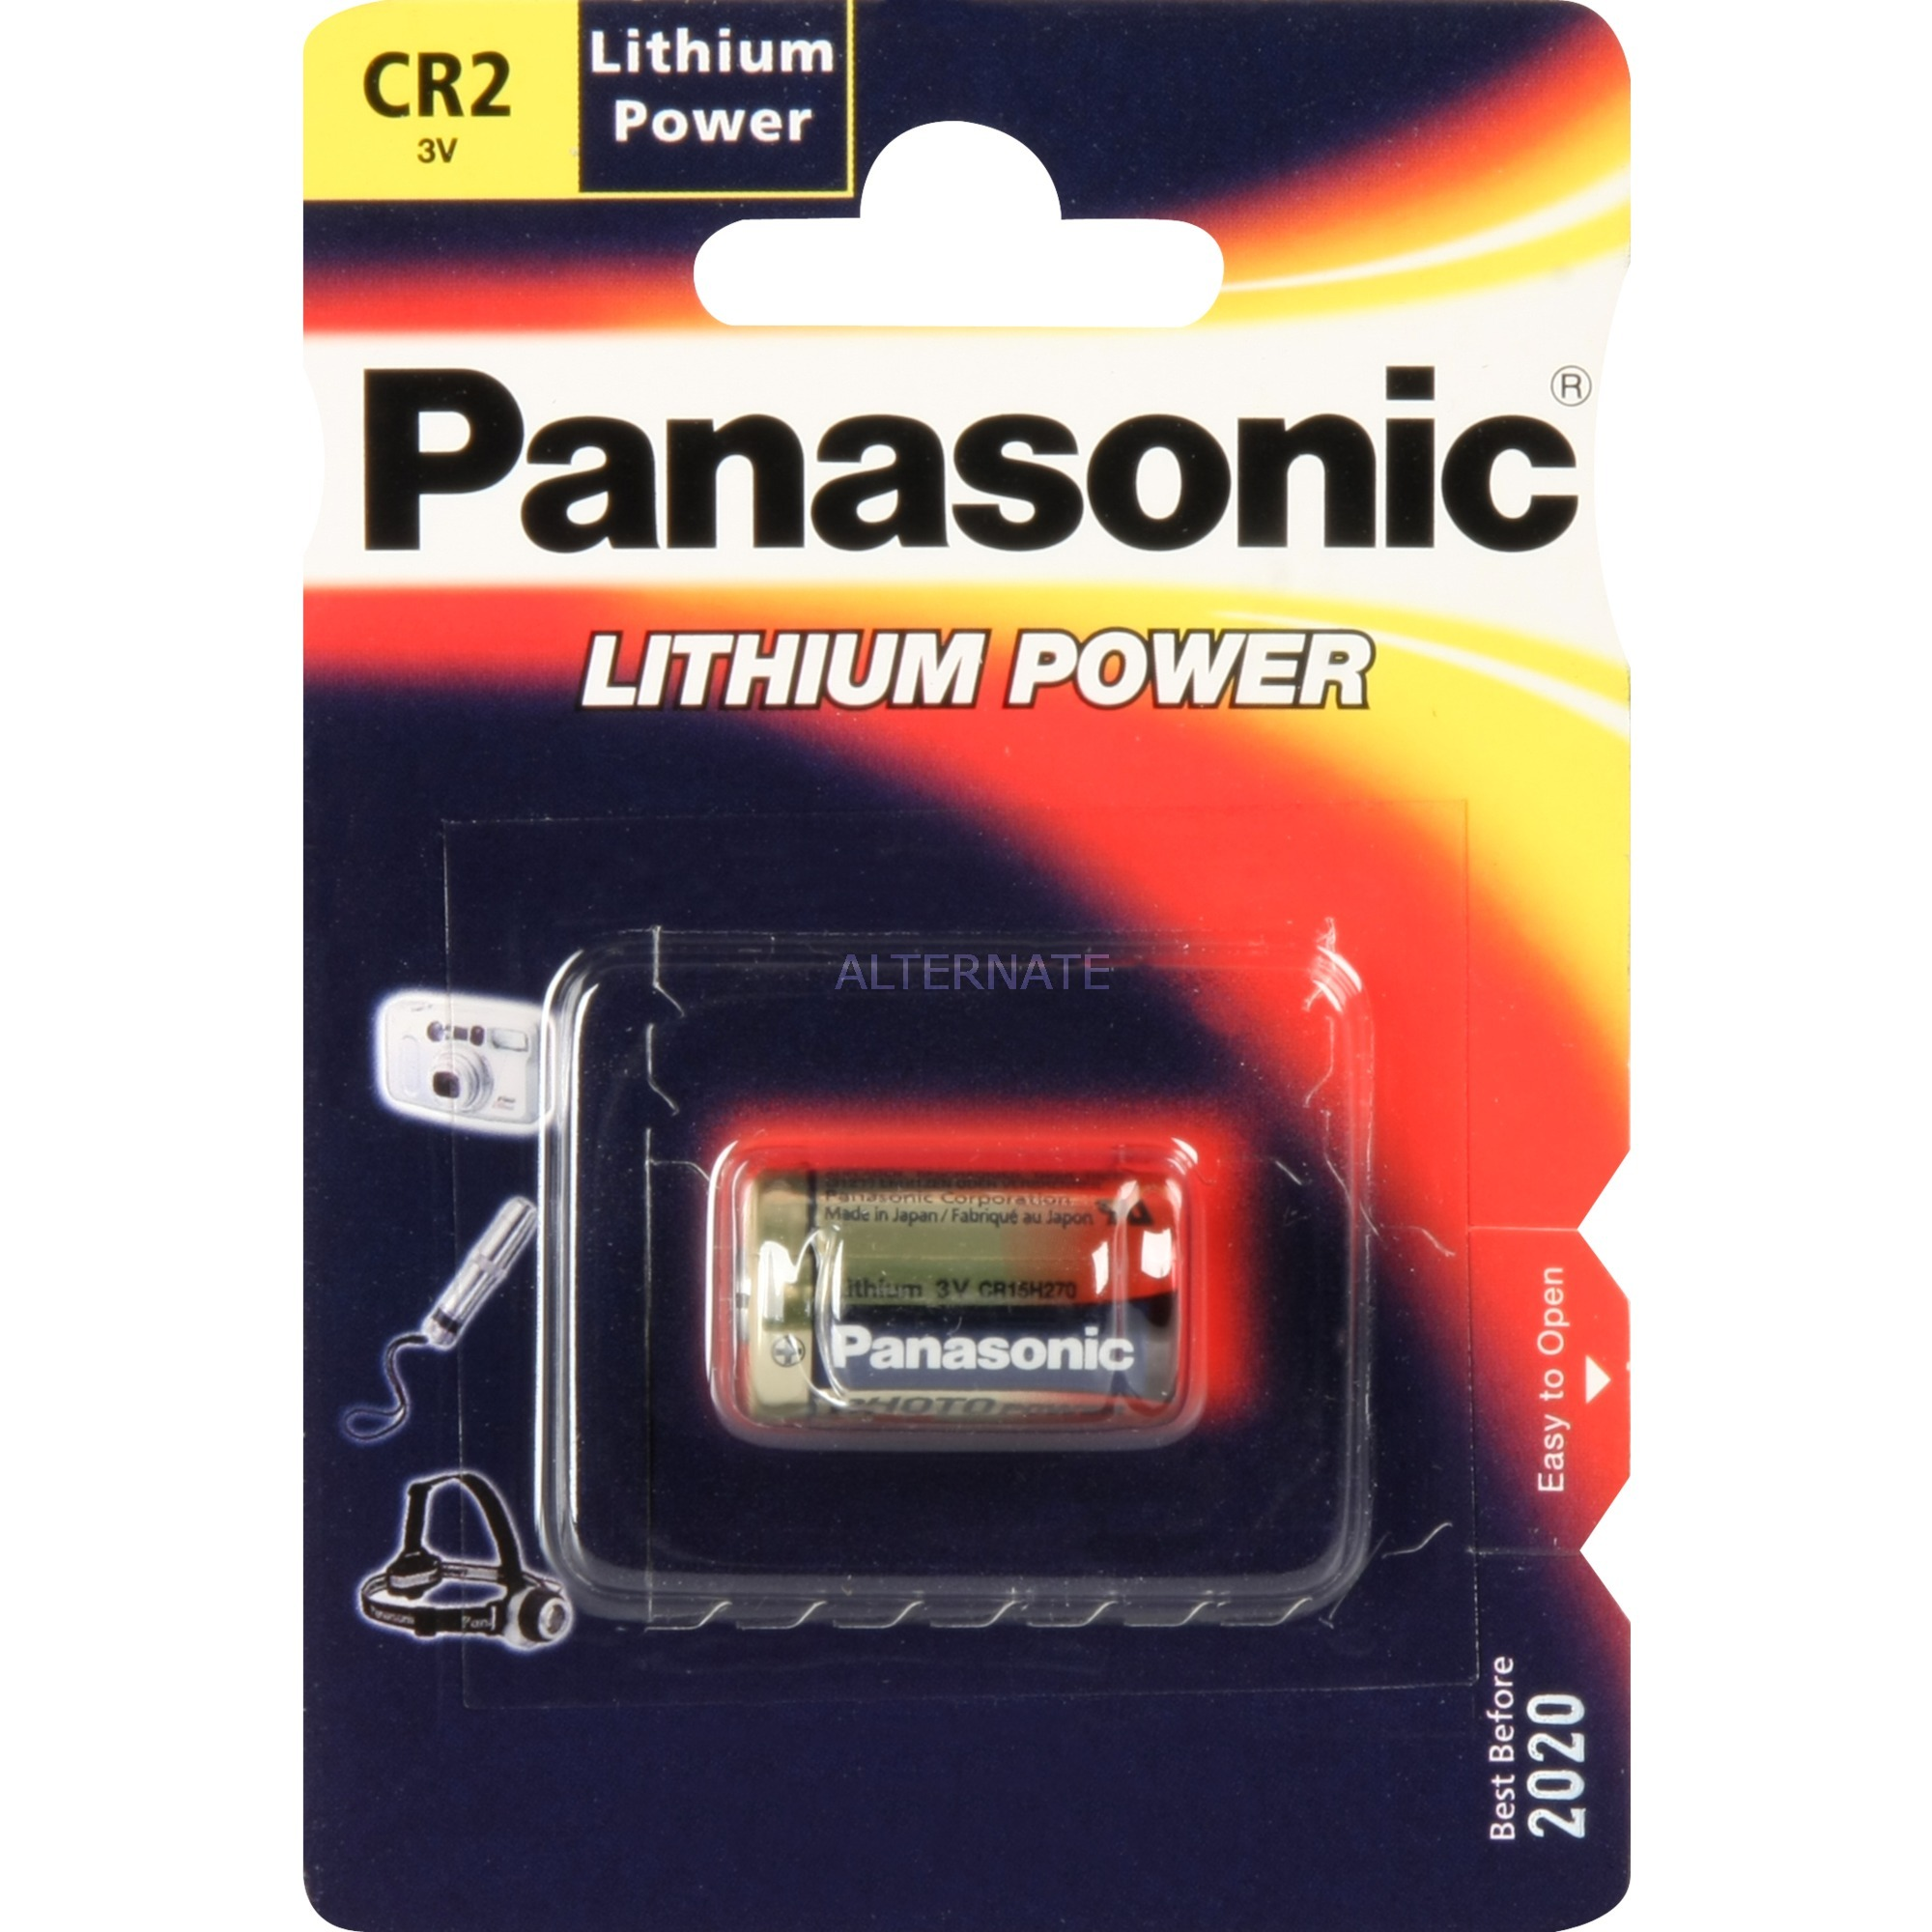 Photo Lithium Battery CR-2 Oxyhydroxyde de nickel (NiOx) 3V pile non-rechargeable, Batterie